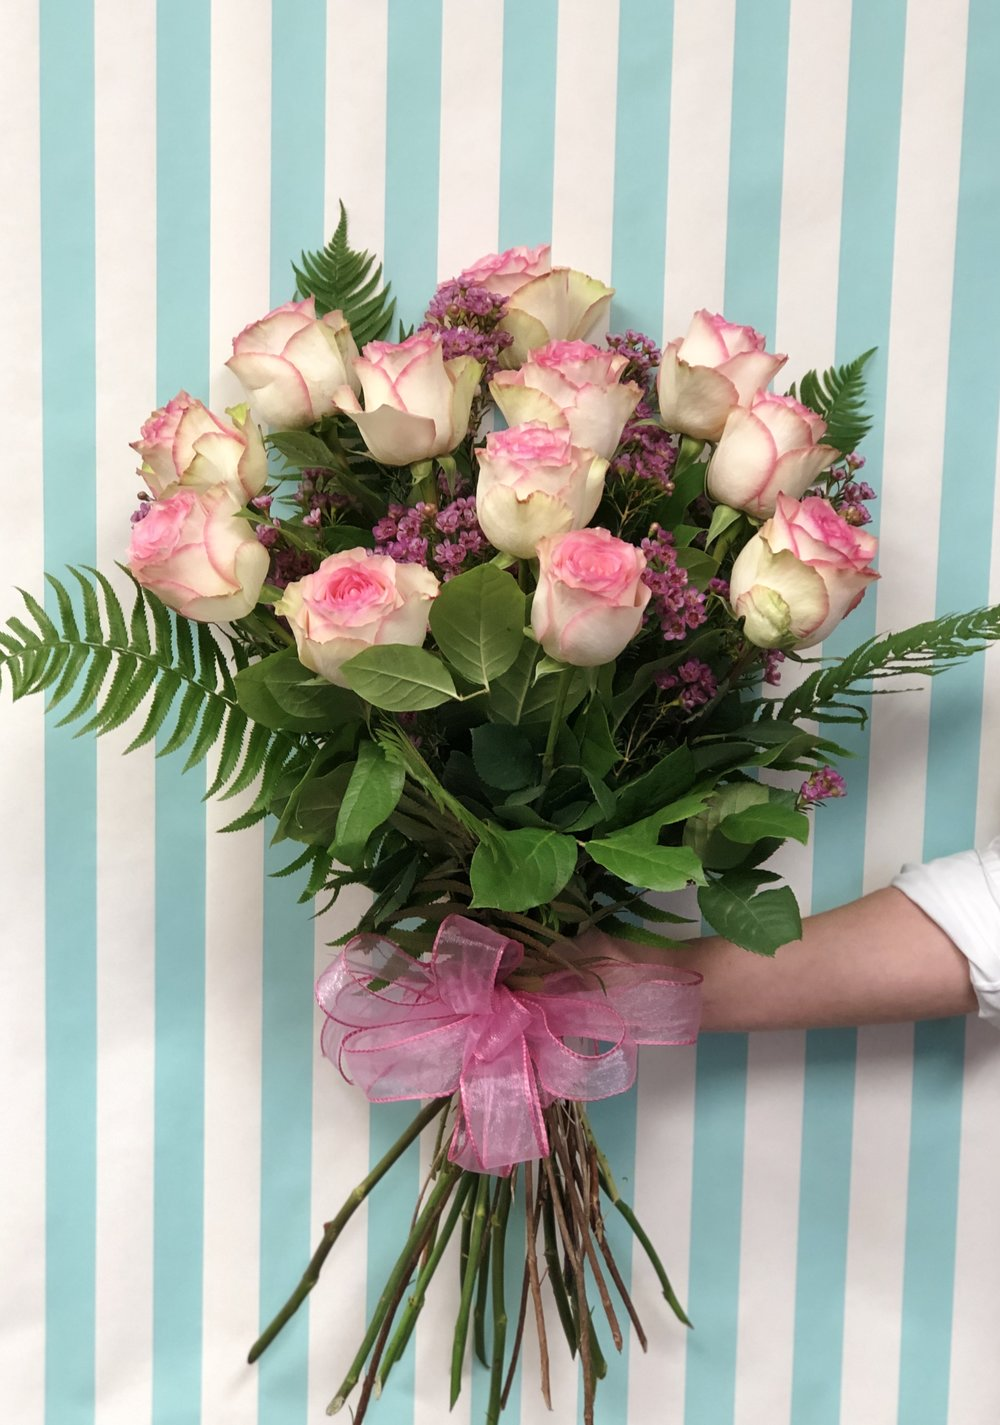 Rose Presentation Bouquet- $90   1 Dozen long stem roses arranged in a beautiful presentation bouquet. Colors may vary unless specified.